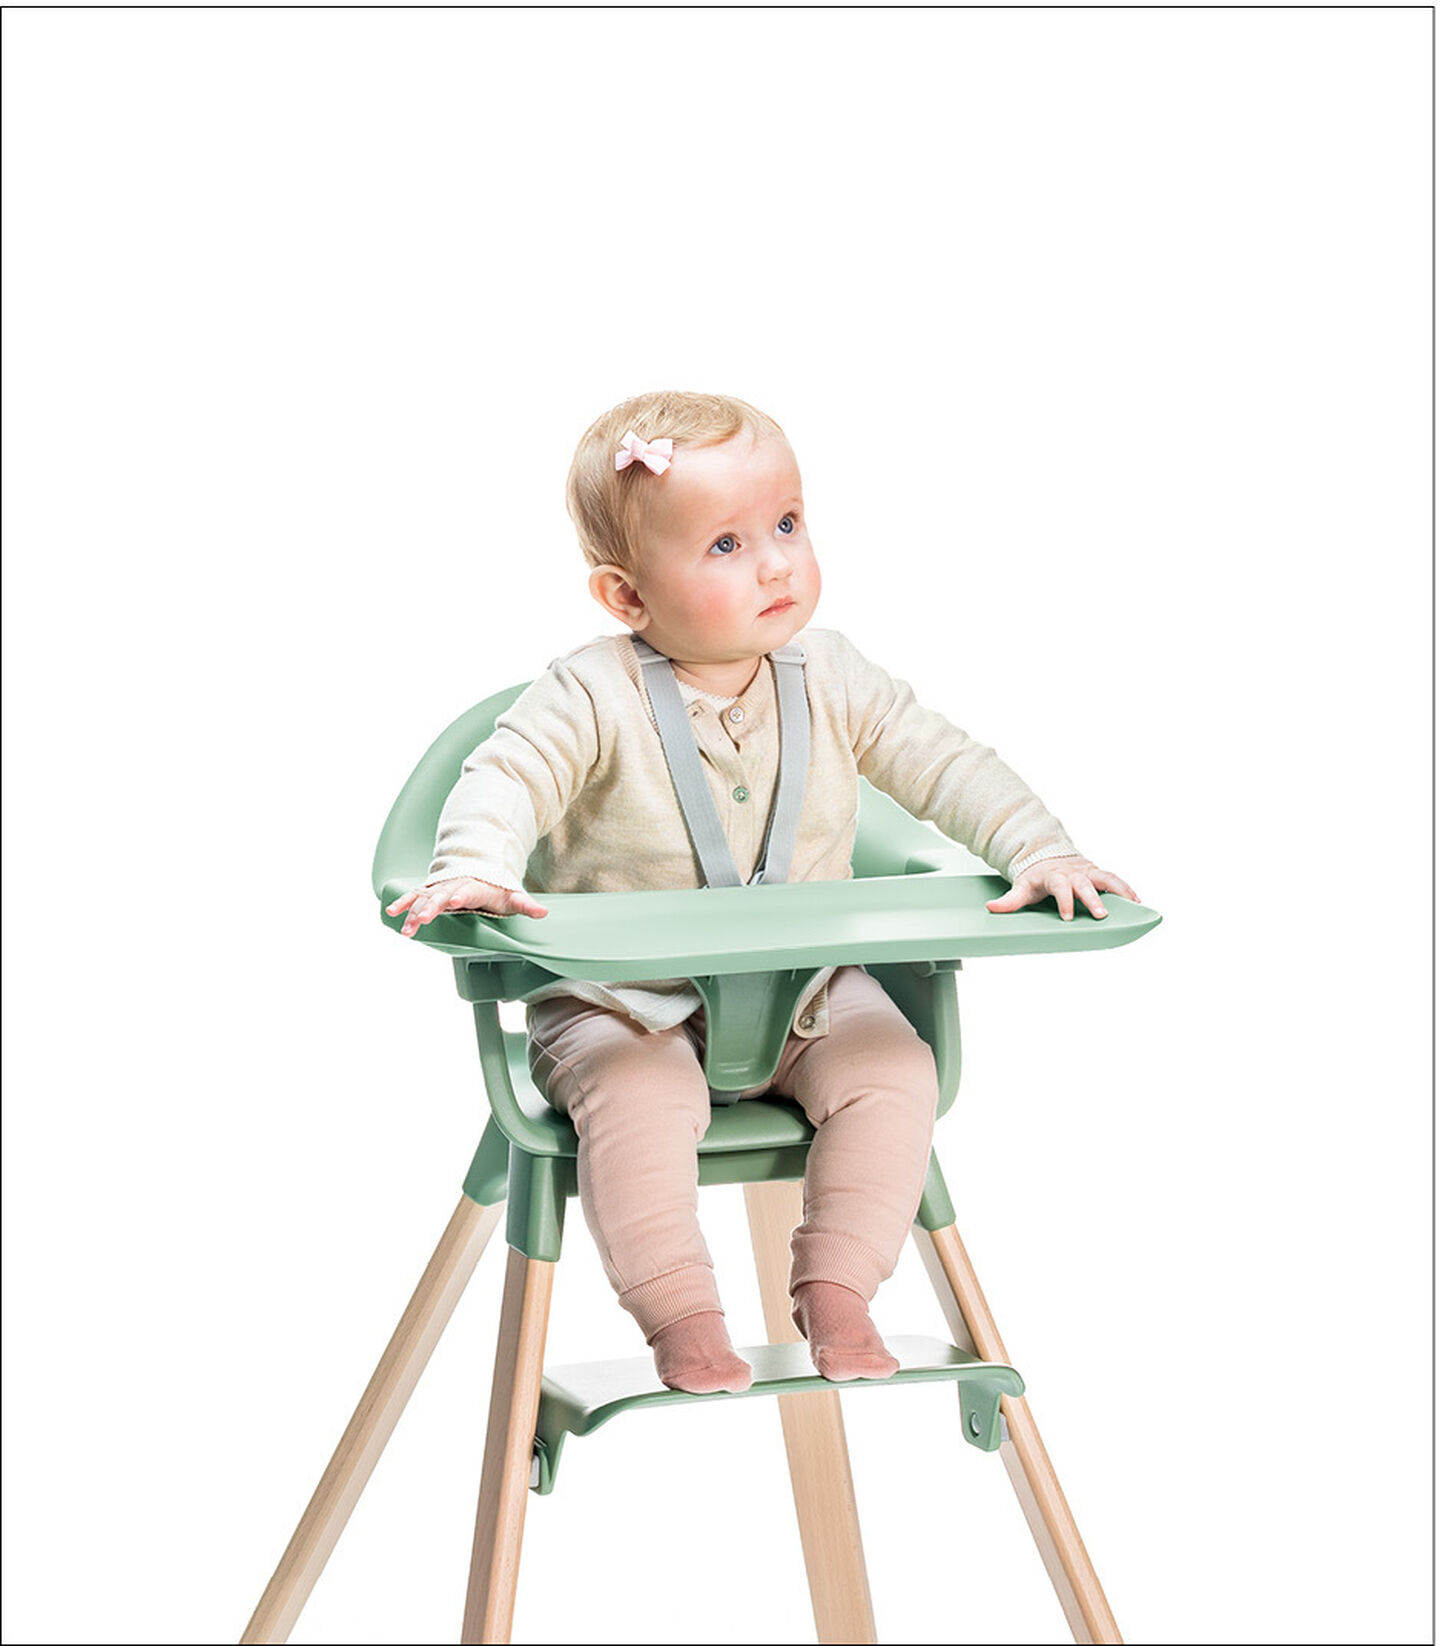 Stokke® Clikk™ High Chair. Natural Beech wood and Clover Green plastic parts. Harness and Tray.